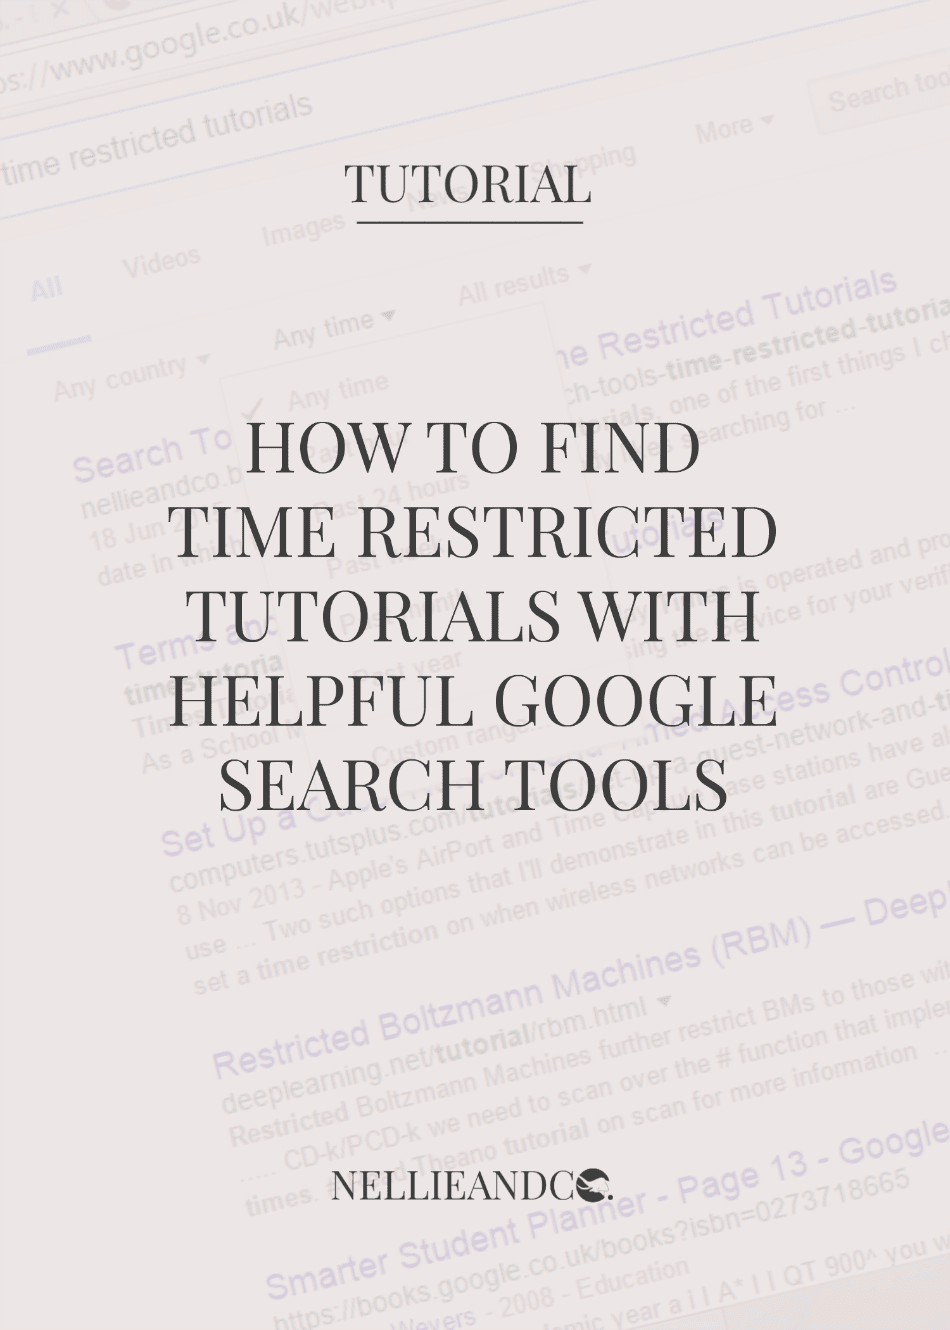 Don't waste time sifting through irrelevant tutorials to find the most up-to-date, most helpful for your problem, use Google Search Tools to make your search quicker, easier and much more precise. Click through to find out how.